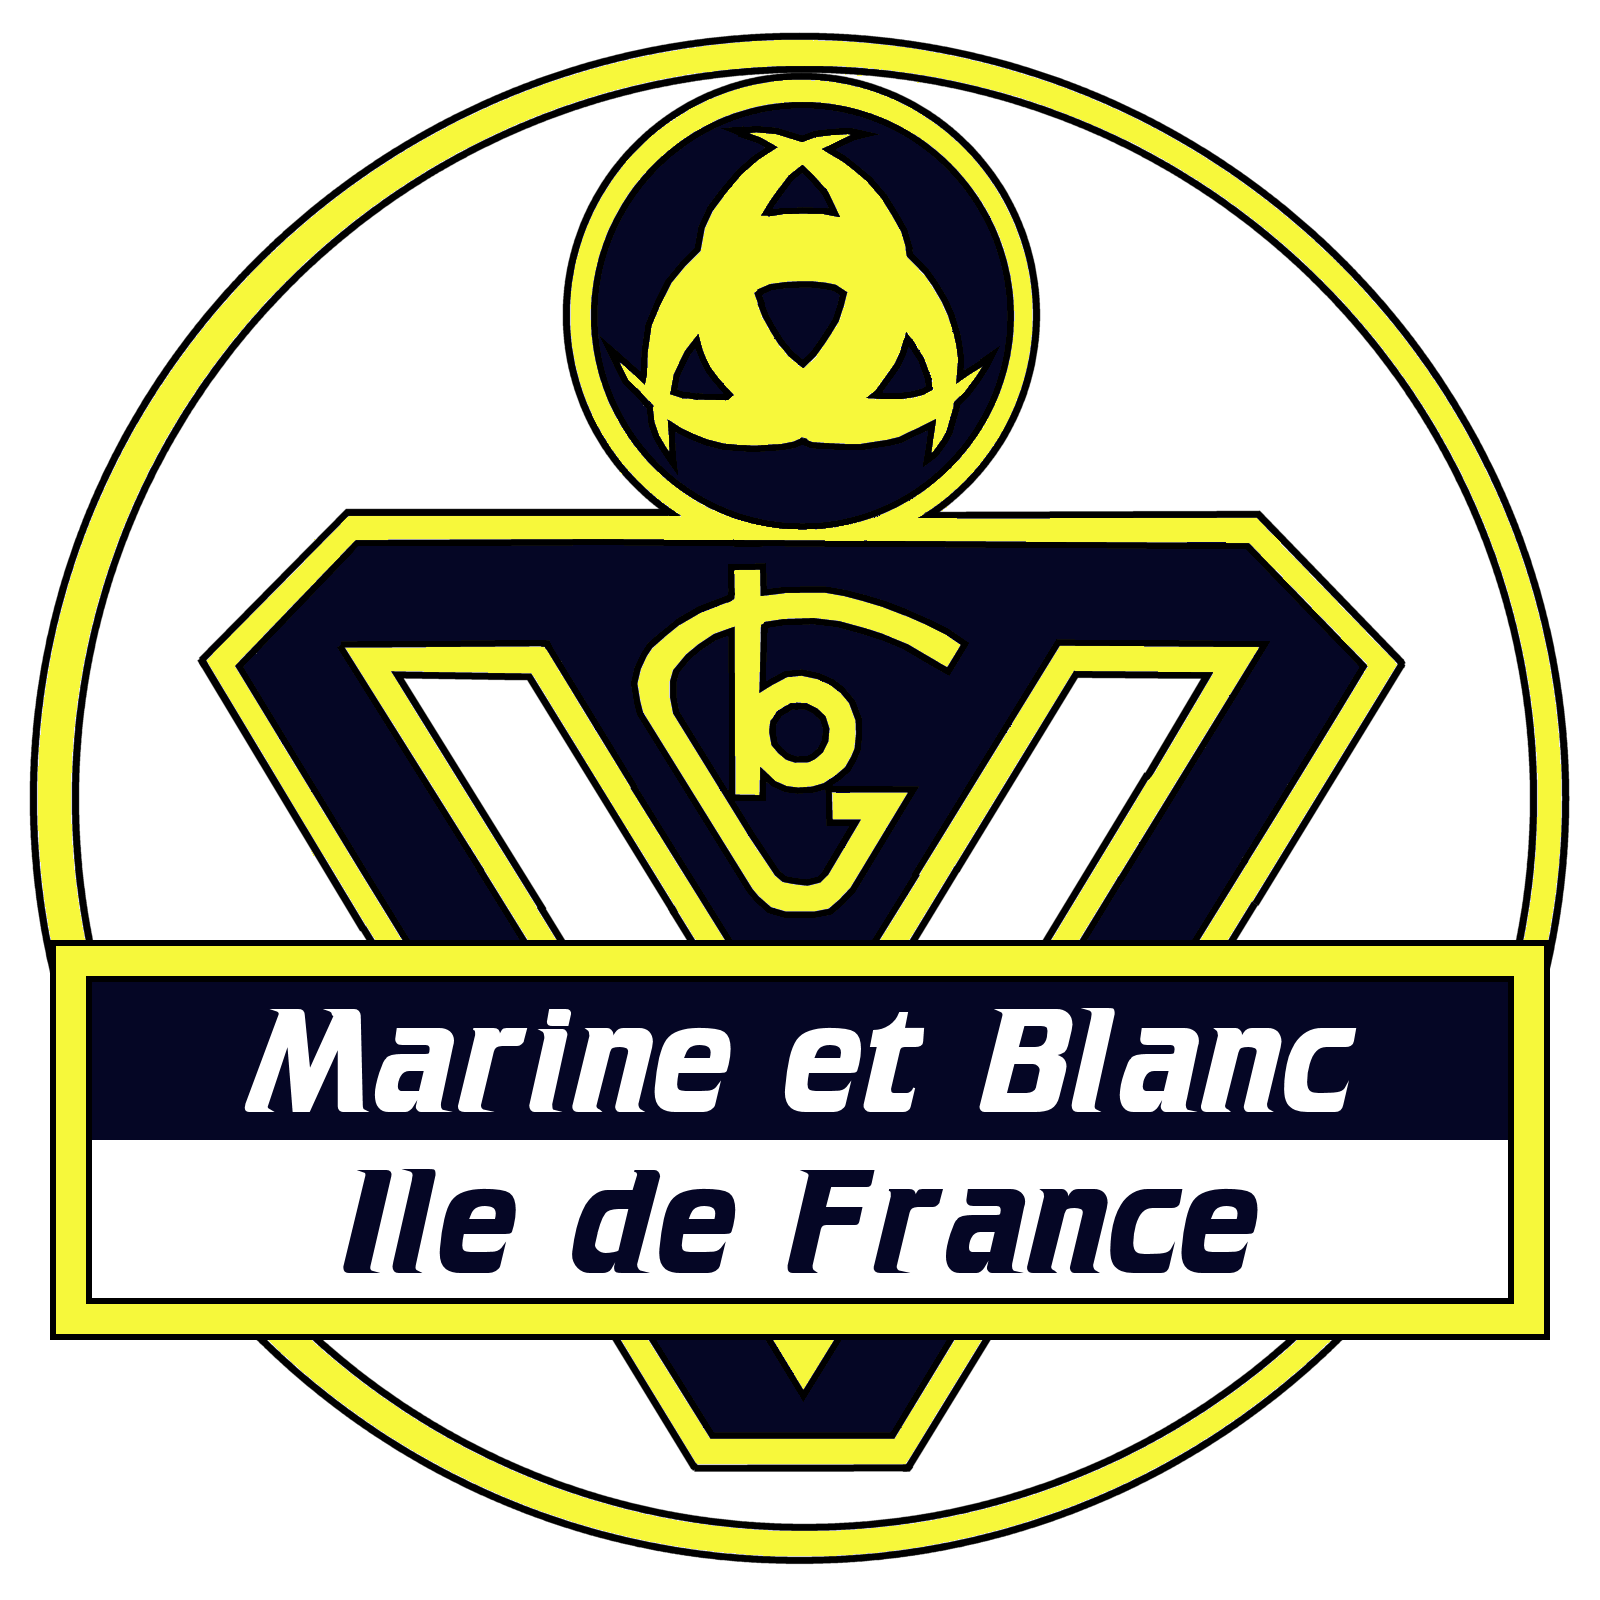 Association - MARINE ET BLANC ILE DE FRANCE